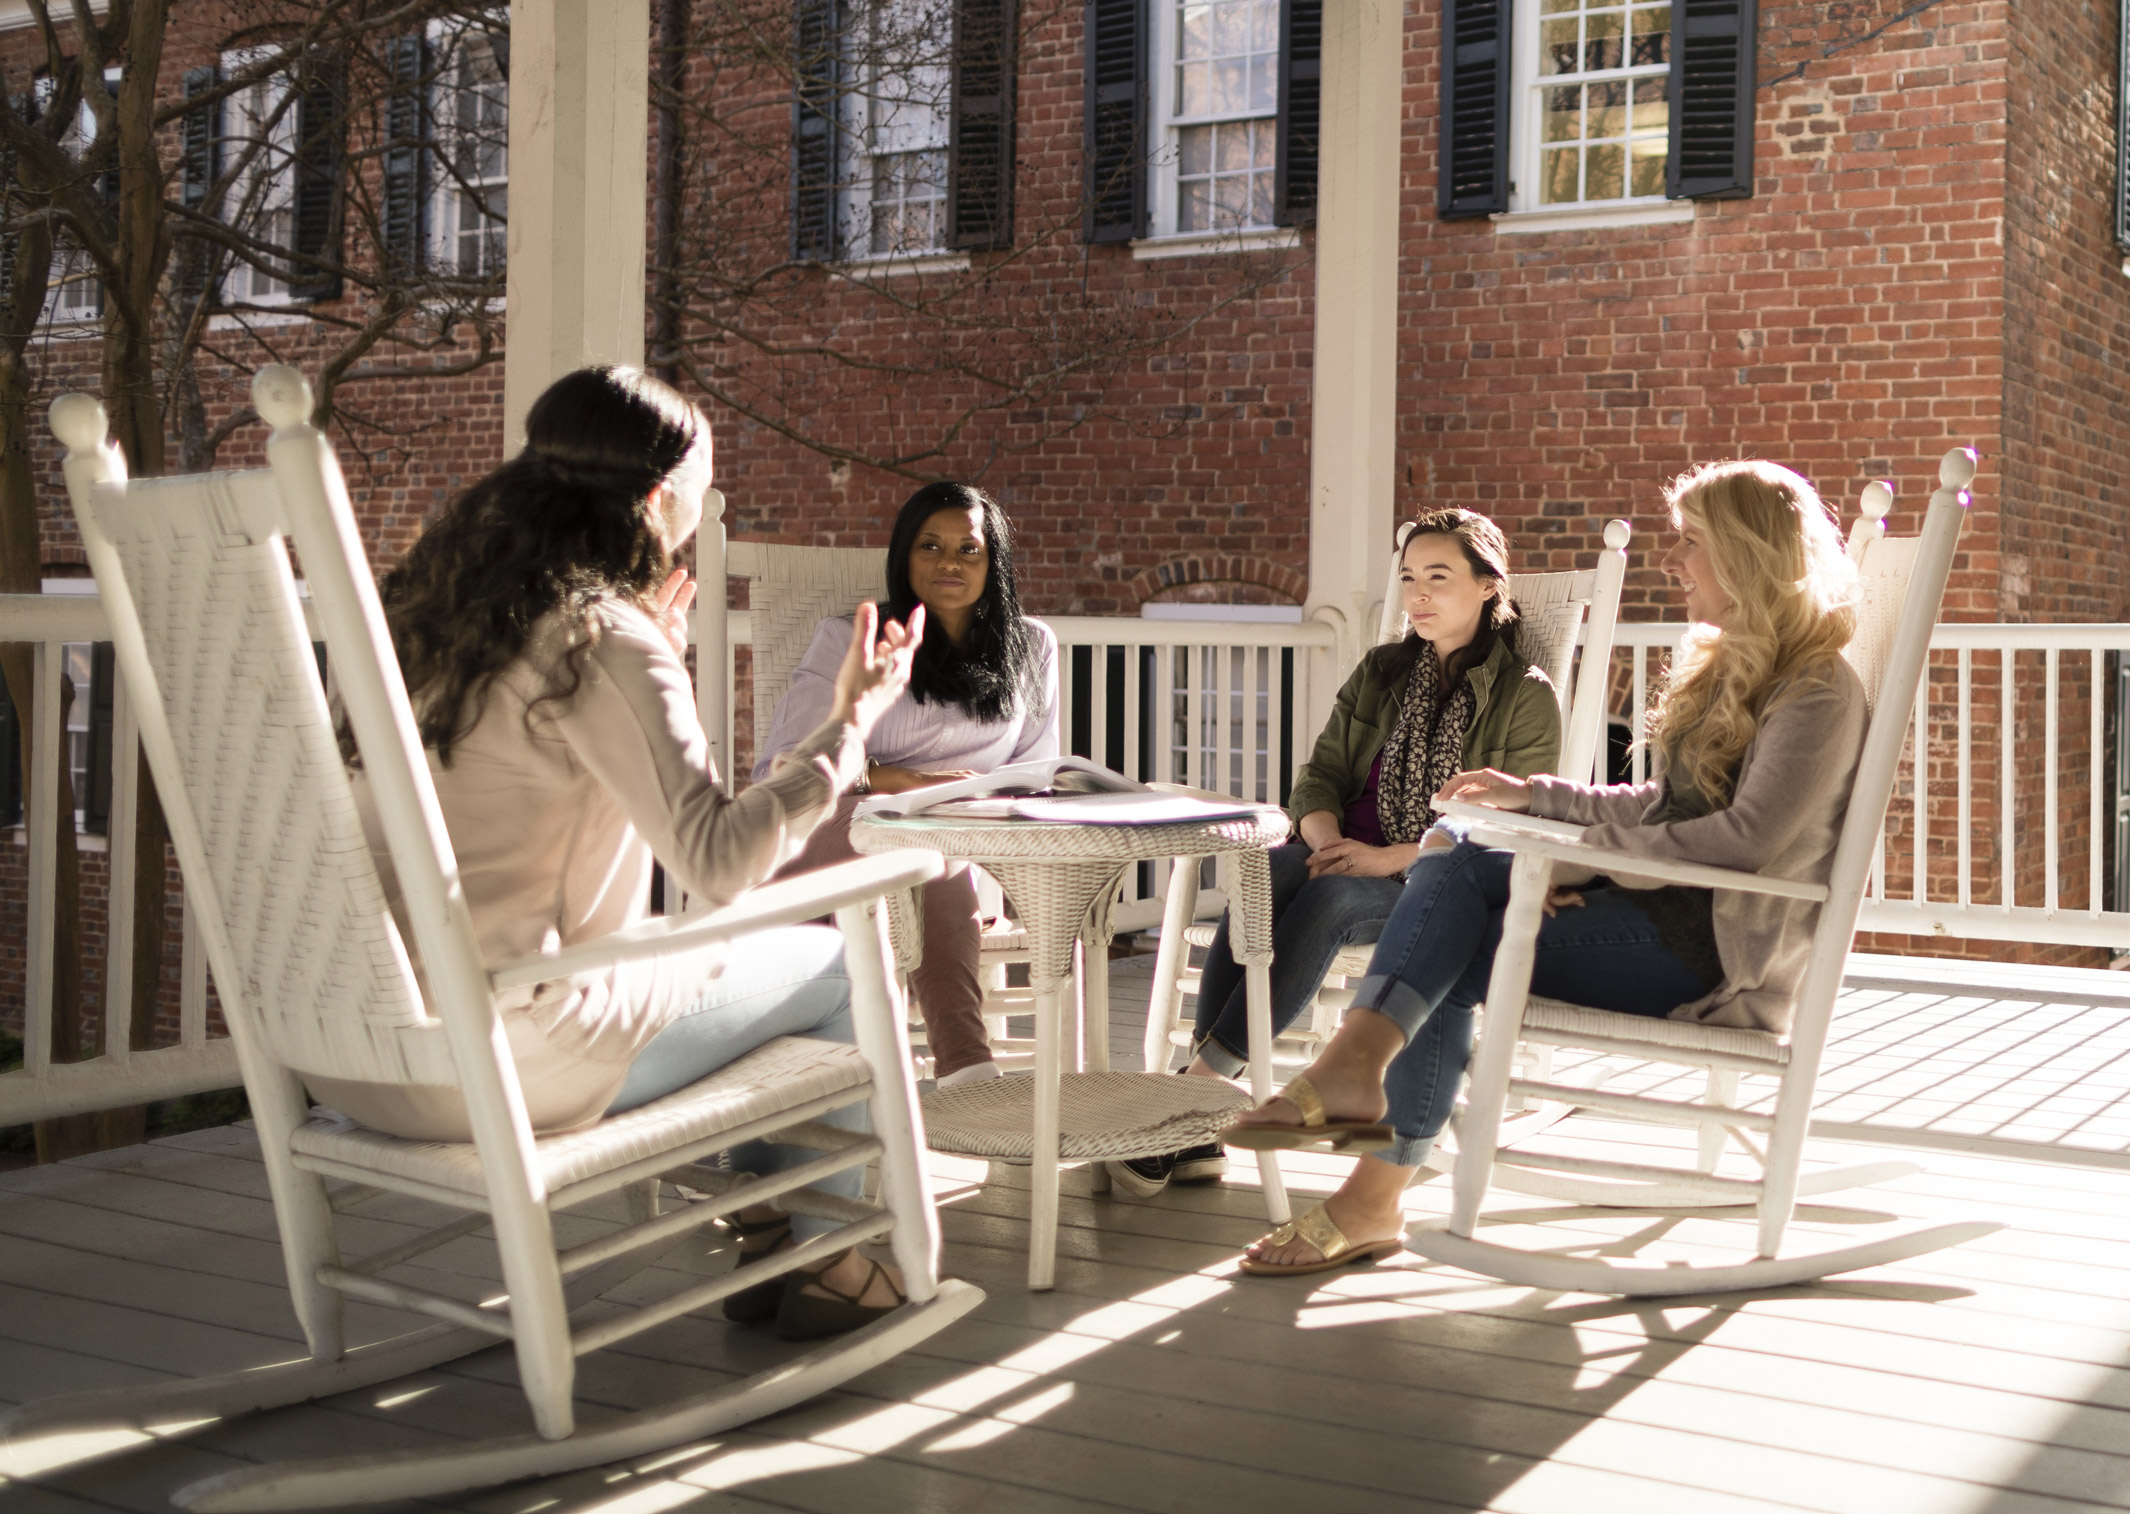 Adult students in rocking chairs engaged in discussion